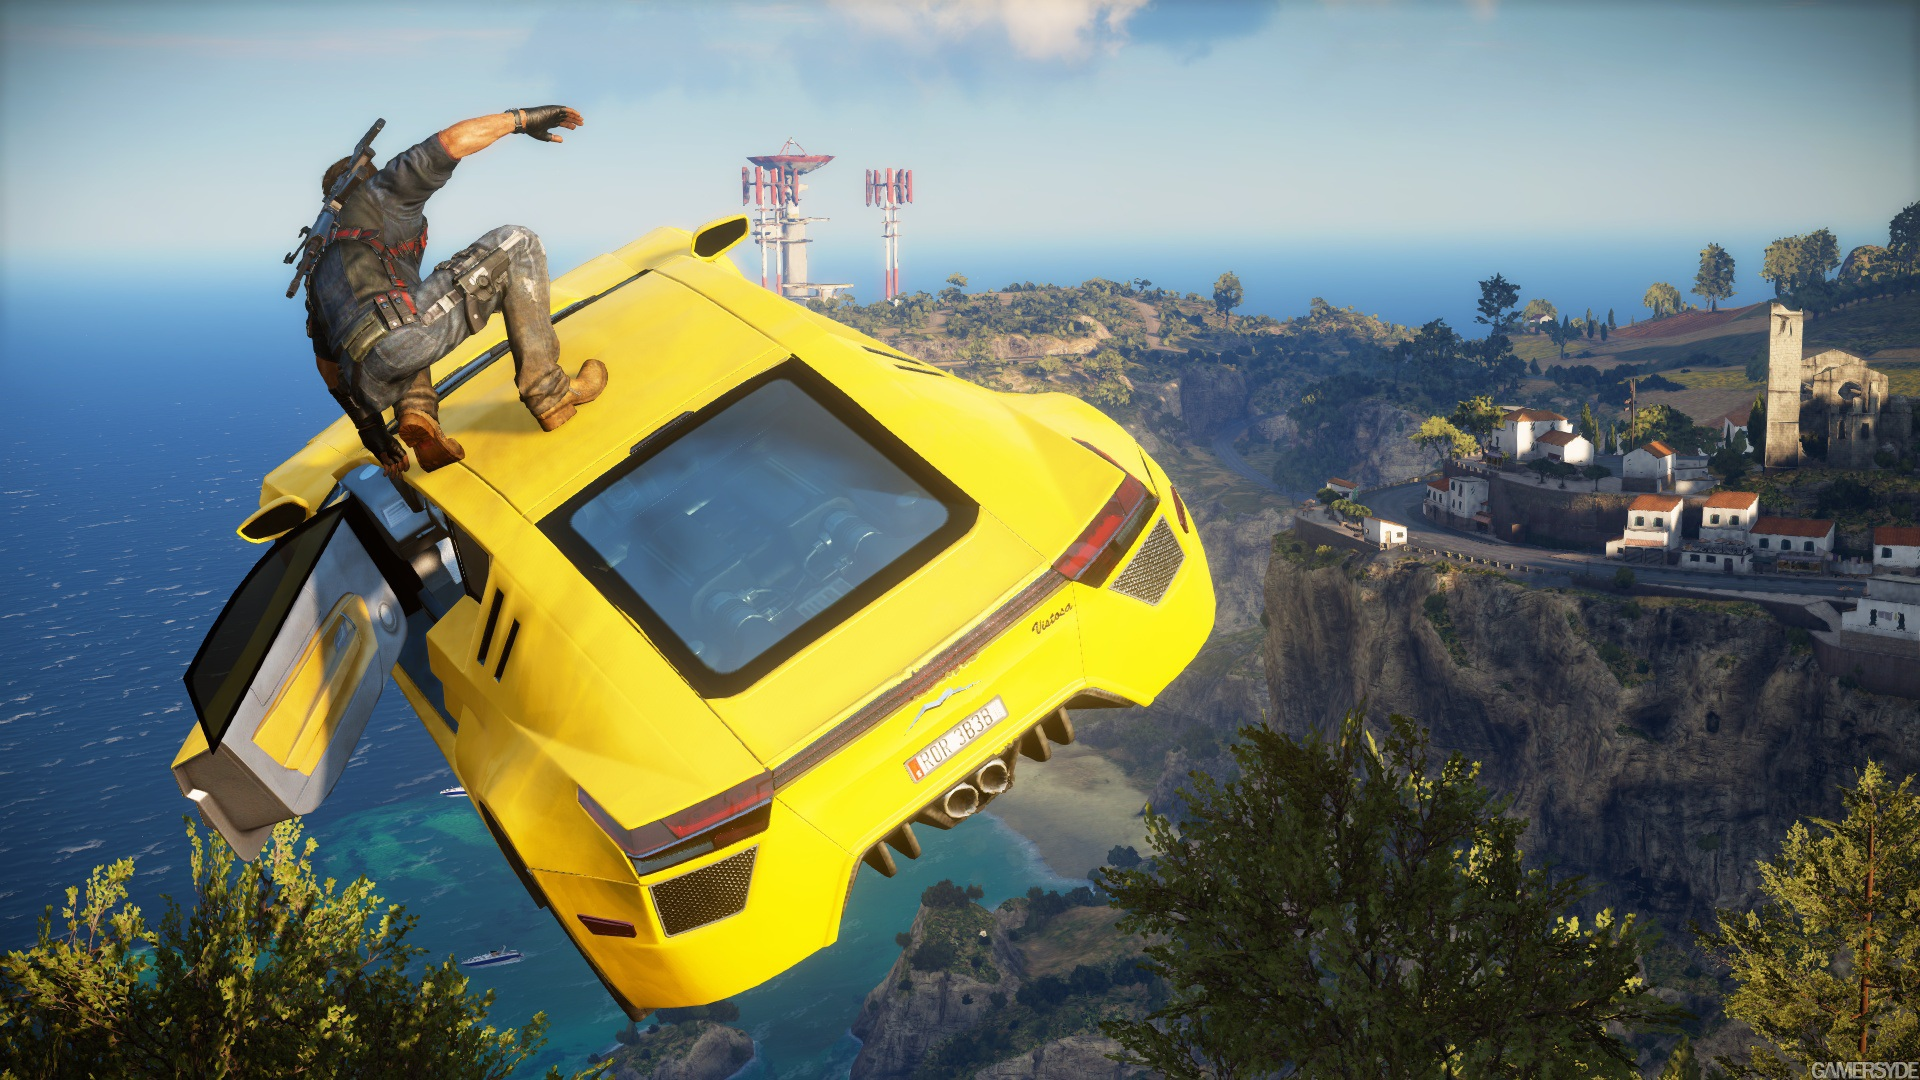 Rico on top of car in mid-air